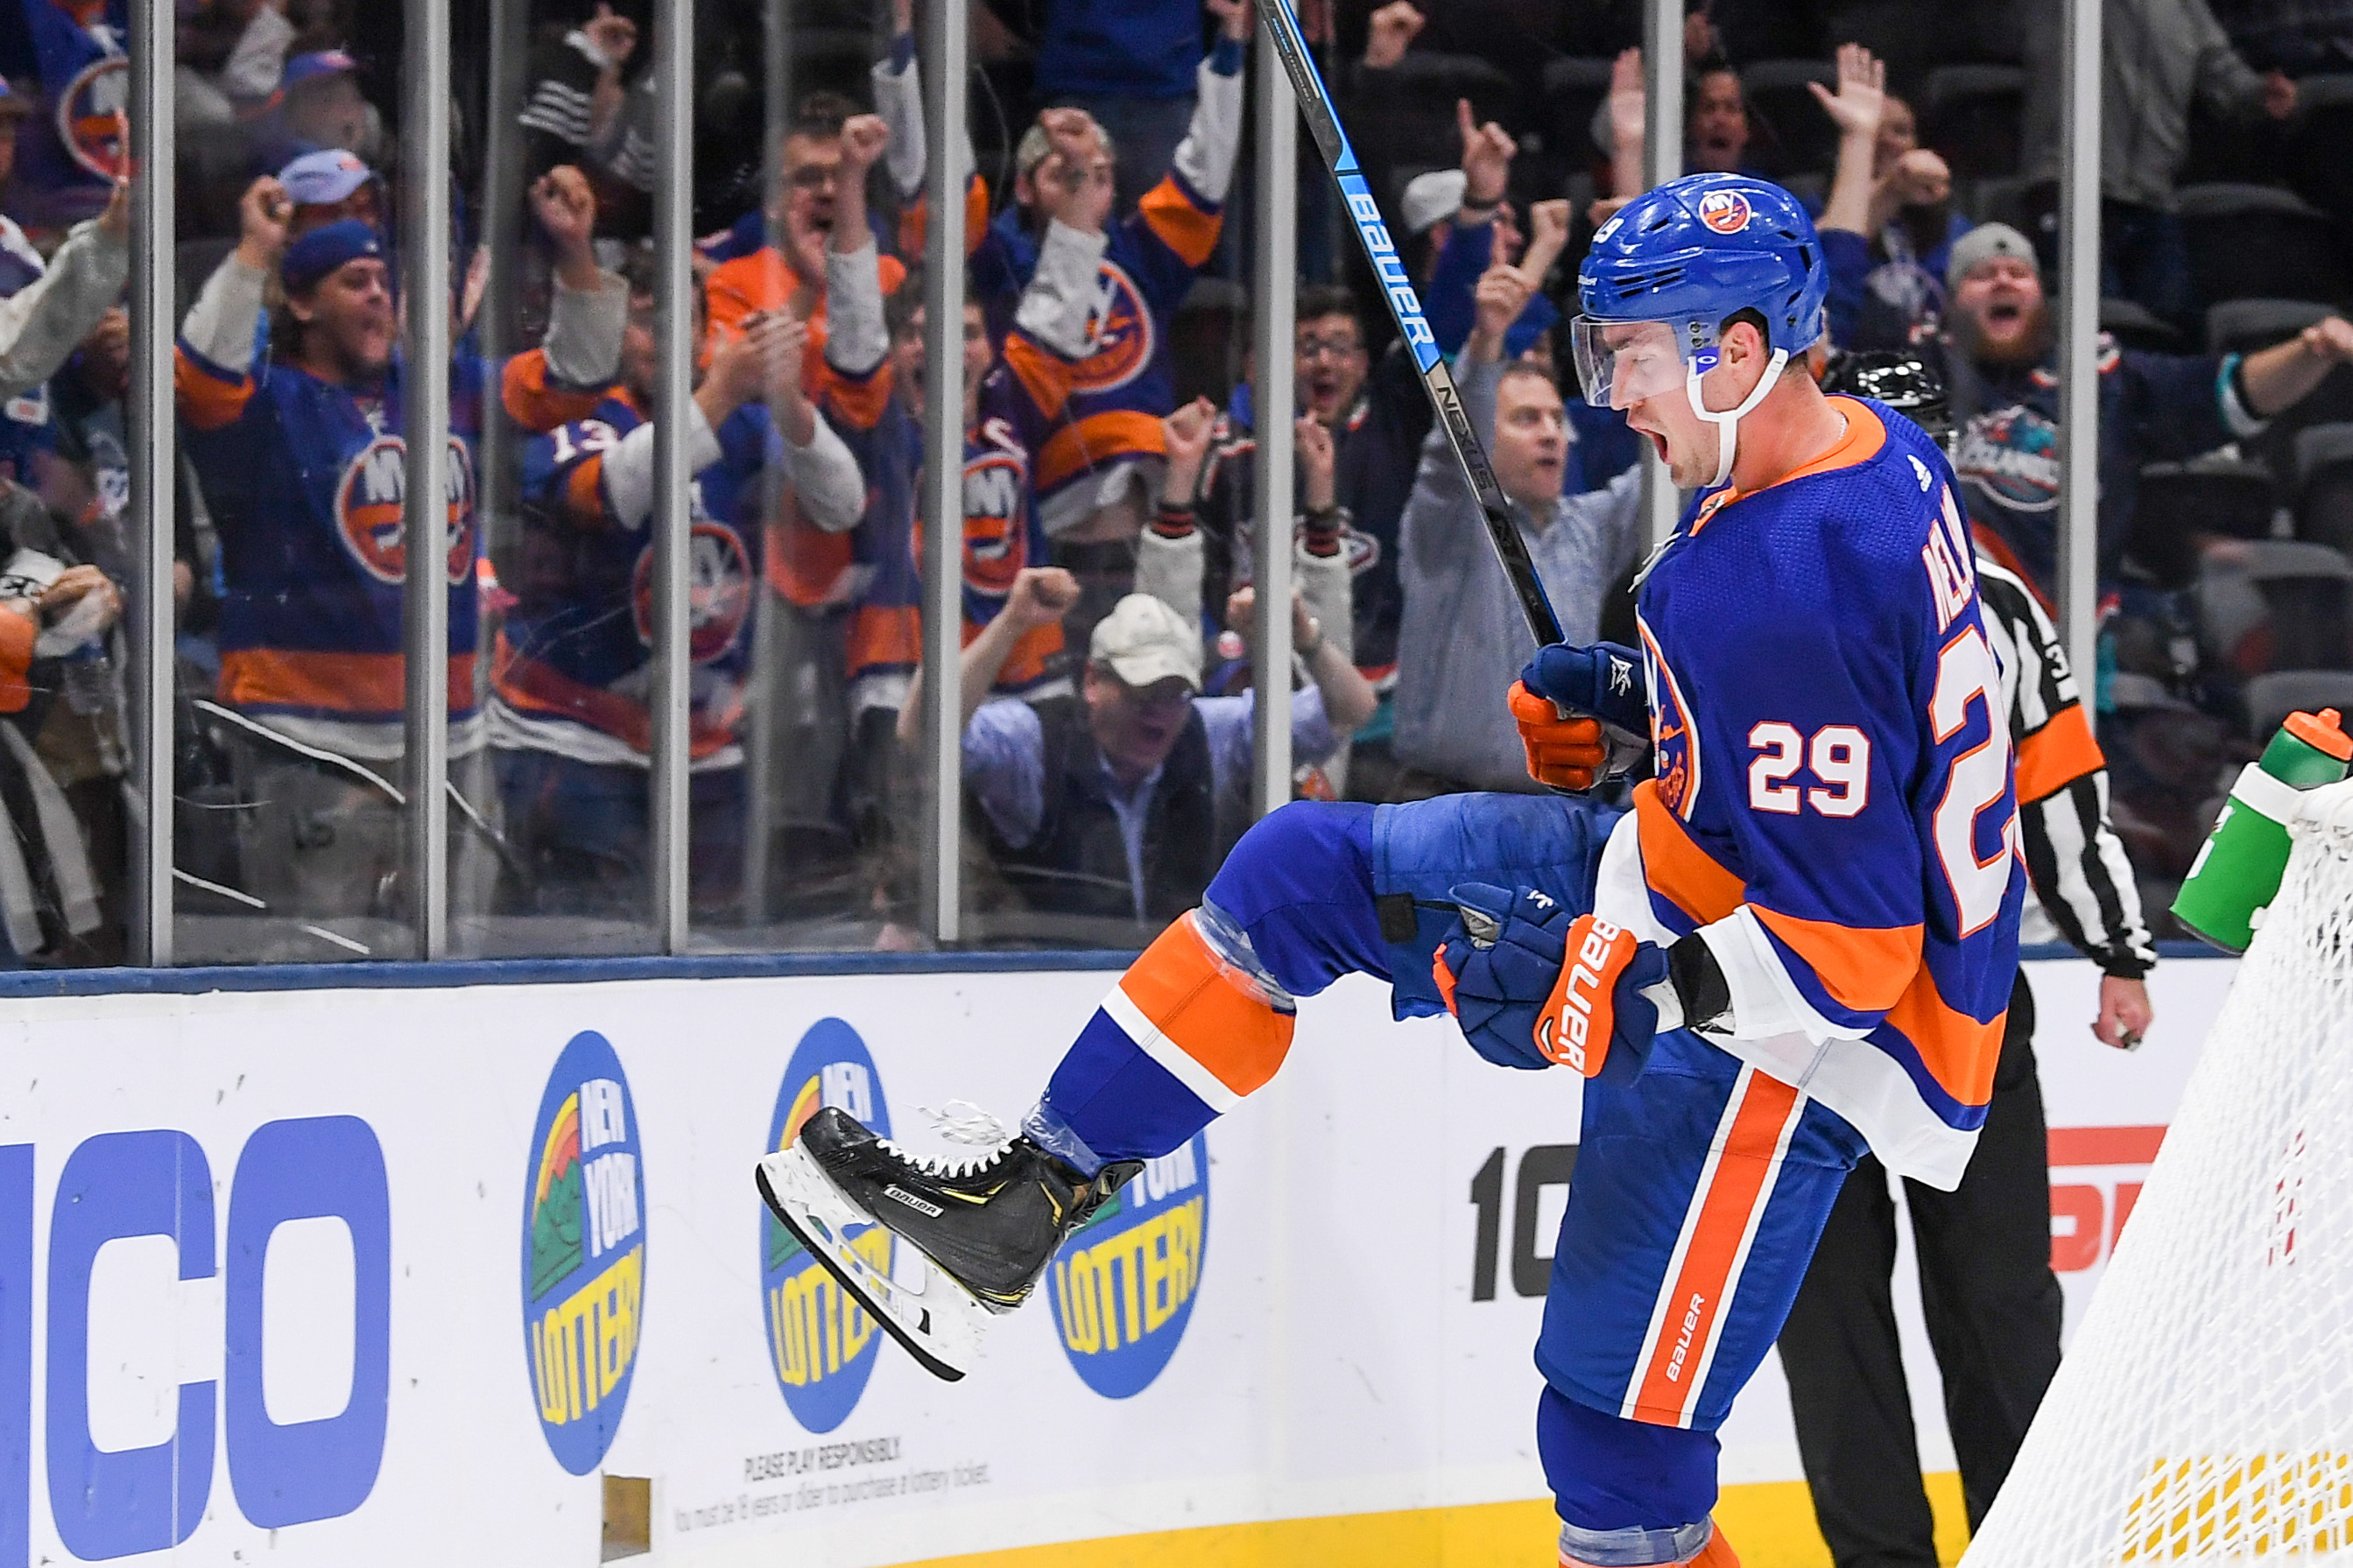 Oct 6, 2019; Brooklyn, NY, USA; New York Islanders center Brock Nelson (29) celebrates his goal against the Winnipeg Jets during the second period at Nassau Veterans Memorial Coliseum. Mandatory Credit: Dennis Schneidler-USA TODAY Sports